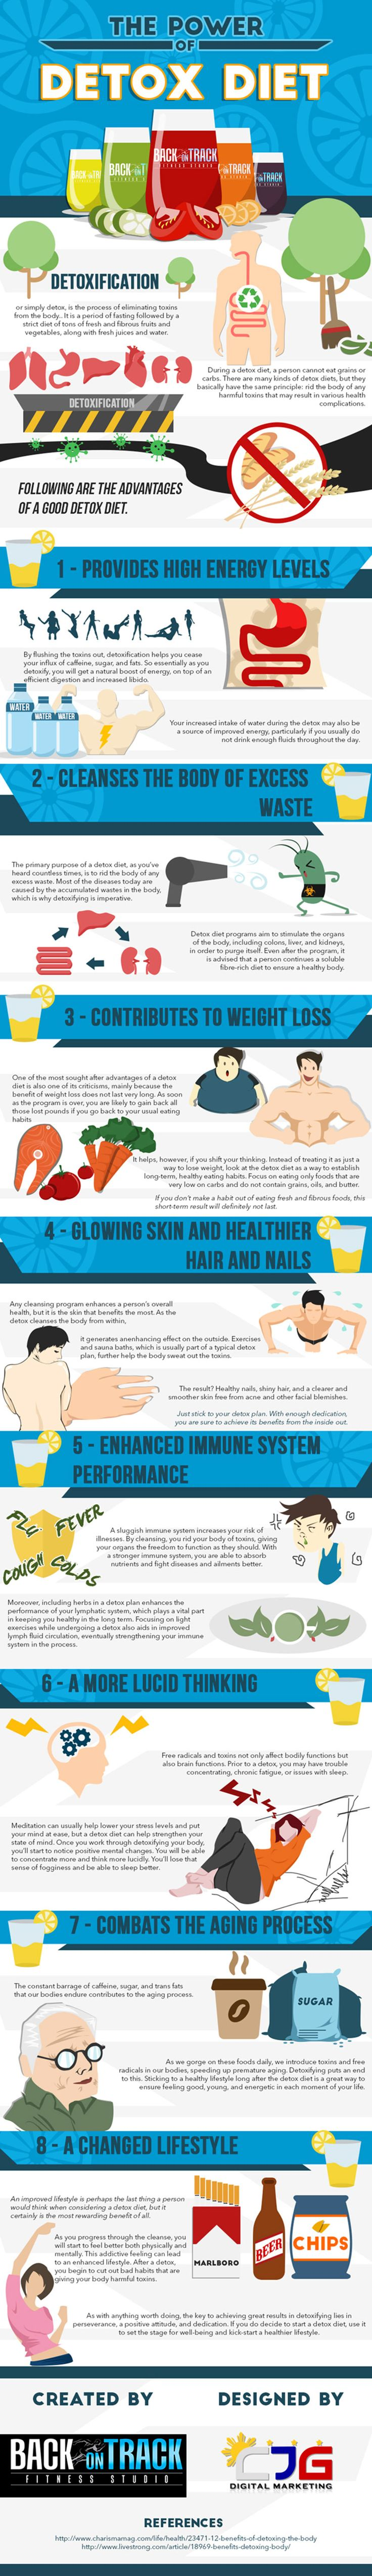 The Power of a Detox Diet Infographic. Topic: toxic cleanse, detoxify, glutenfree, organic.